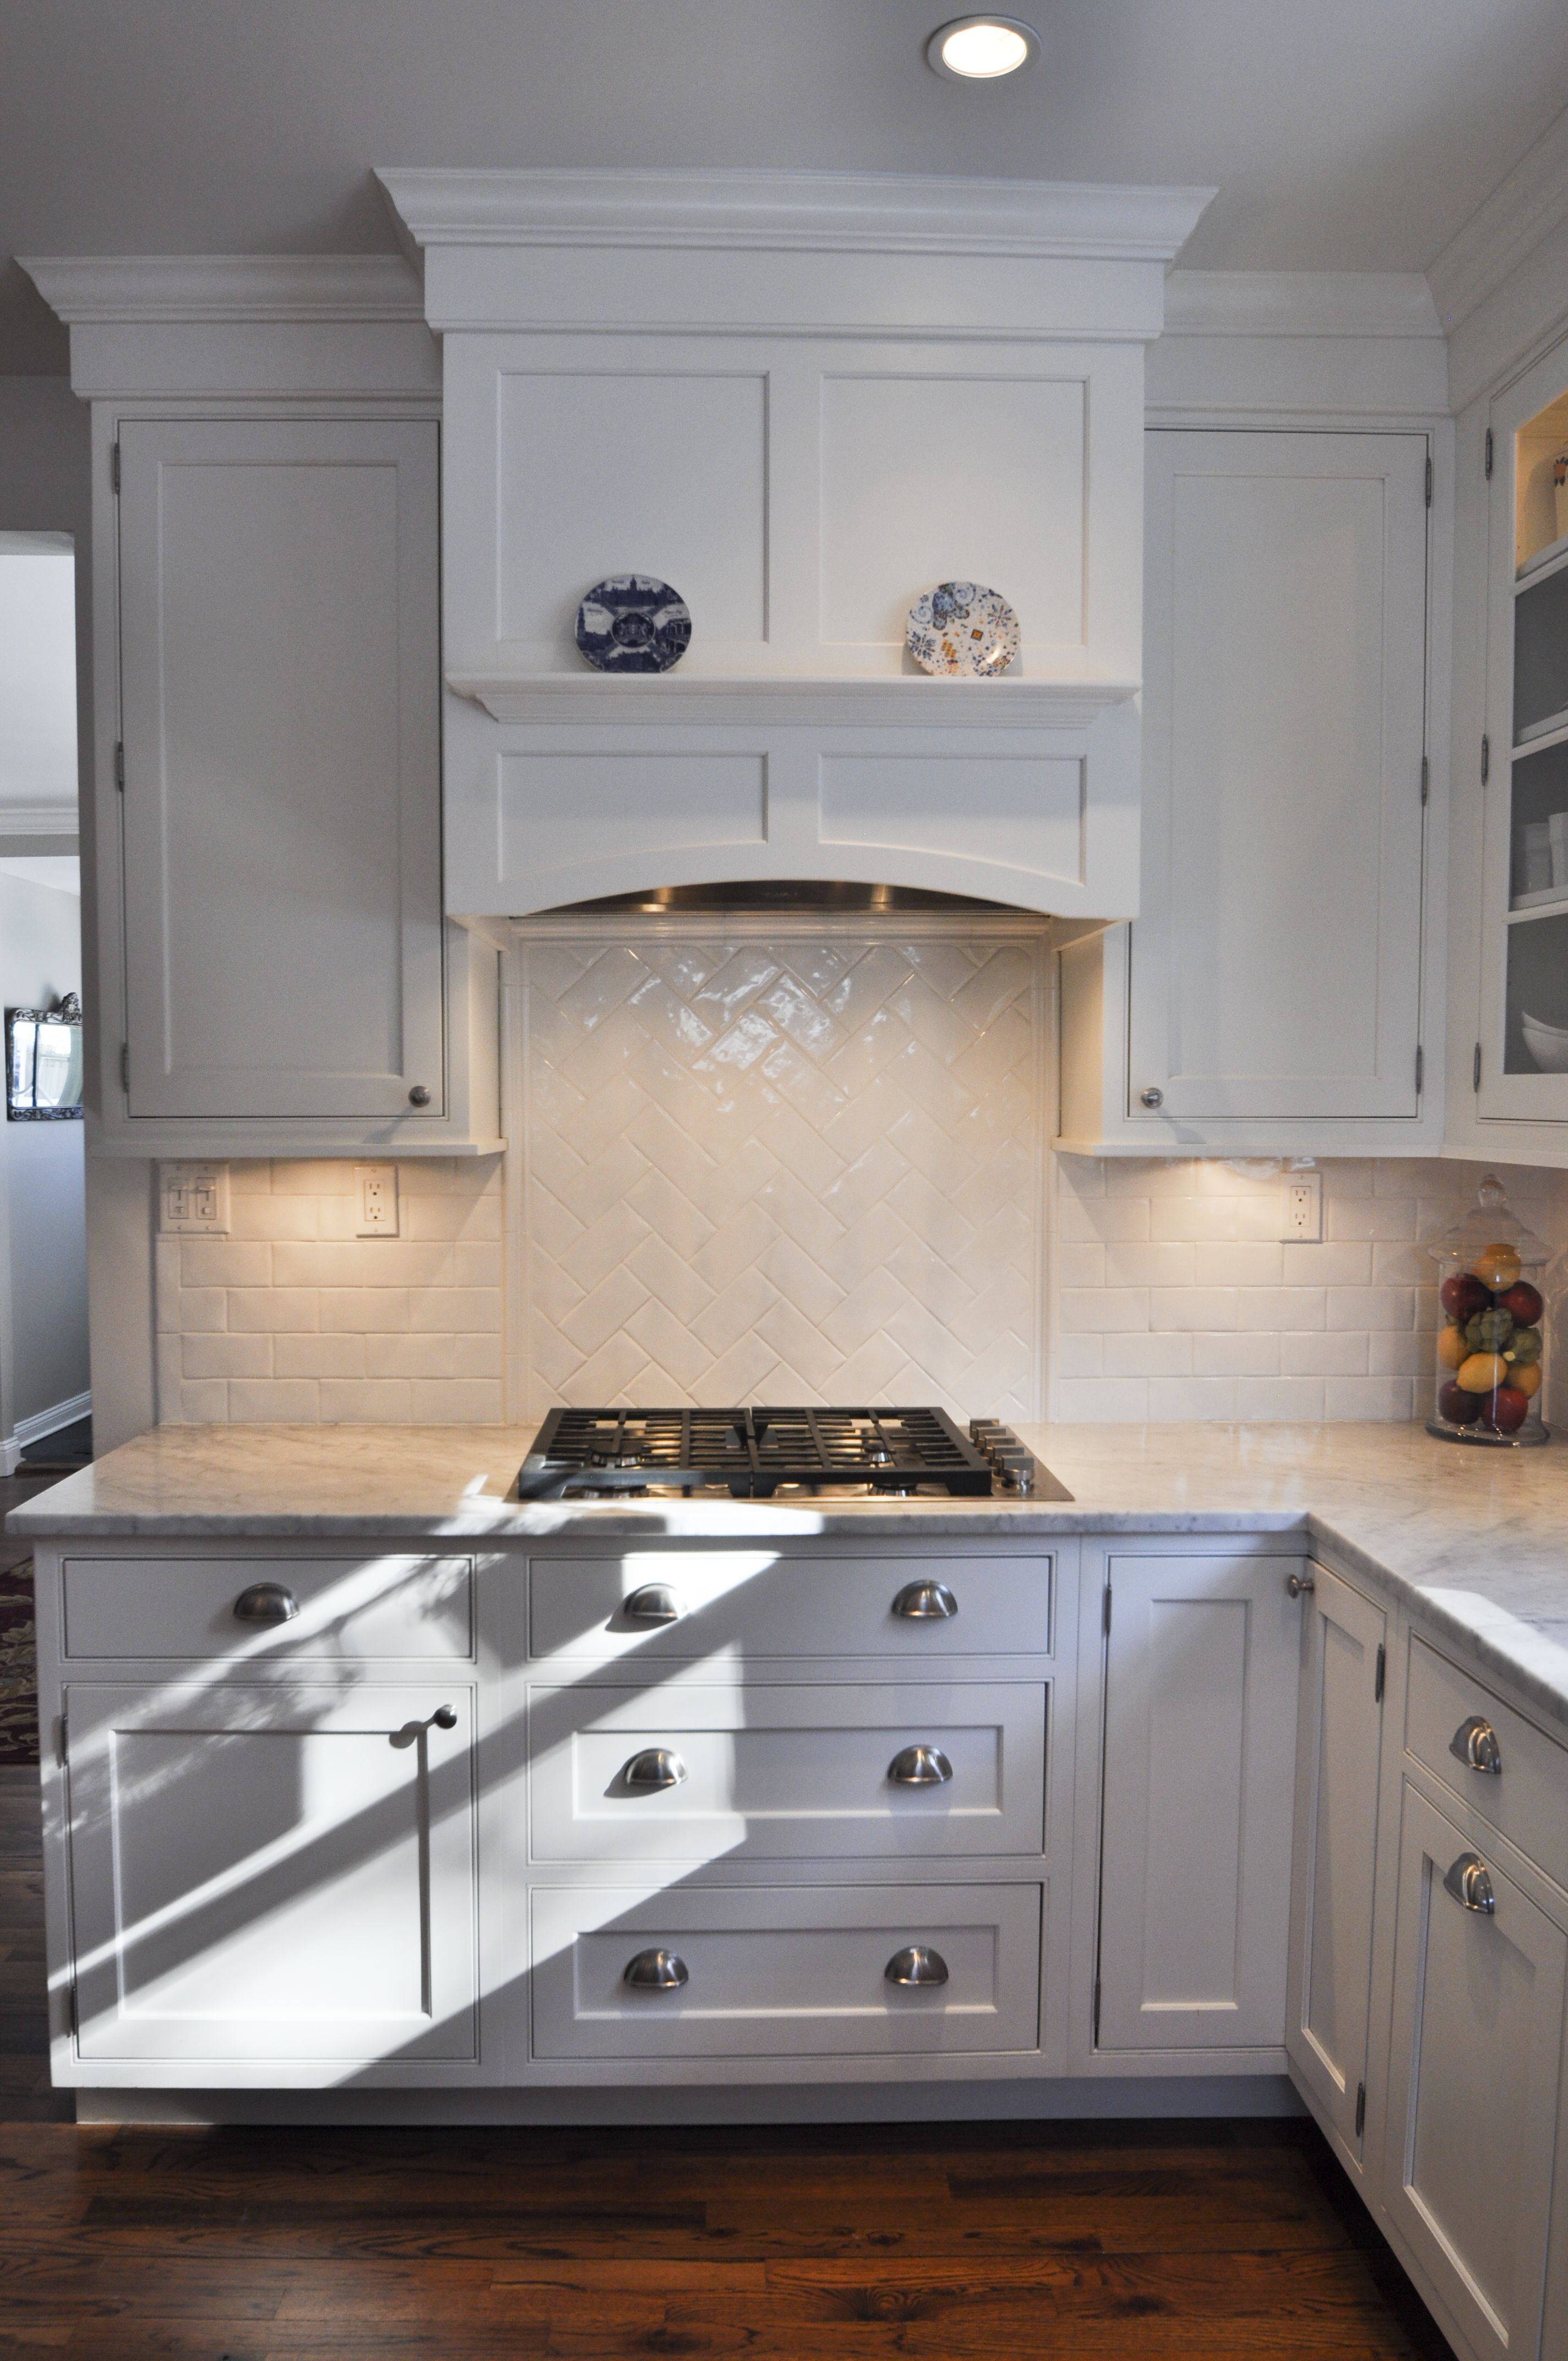 Kitchen Island Extractor Ideas Gas Cooktop With Under Cabinet Lighting, Built-in Hood